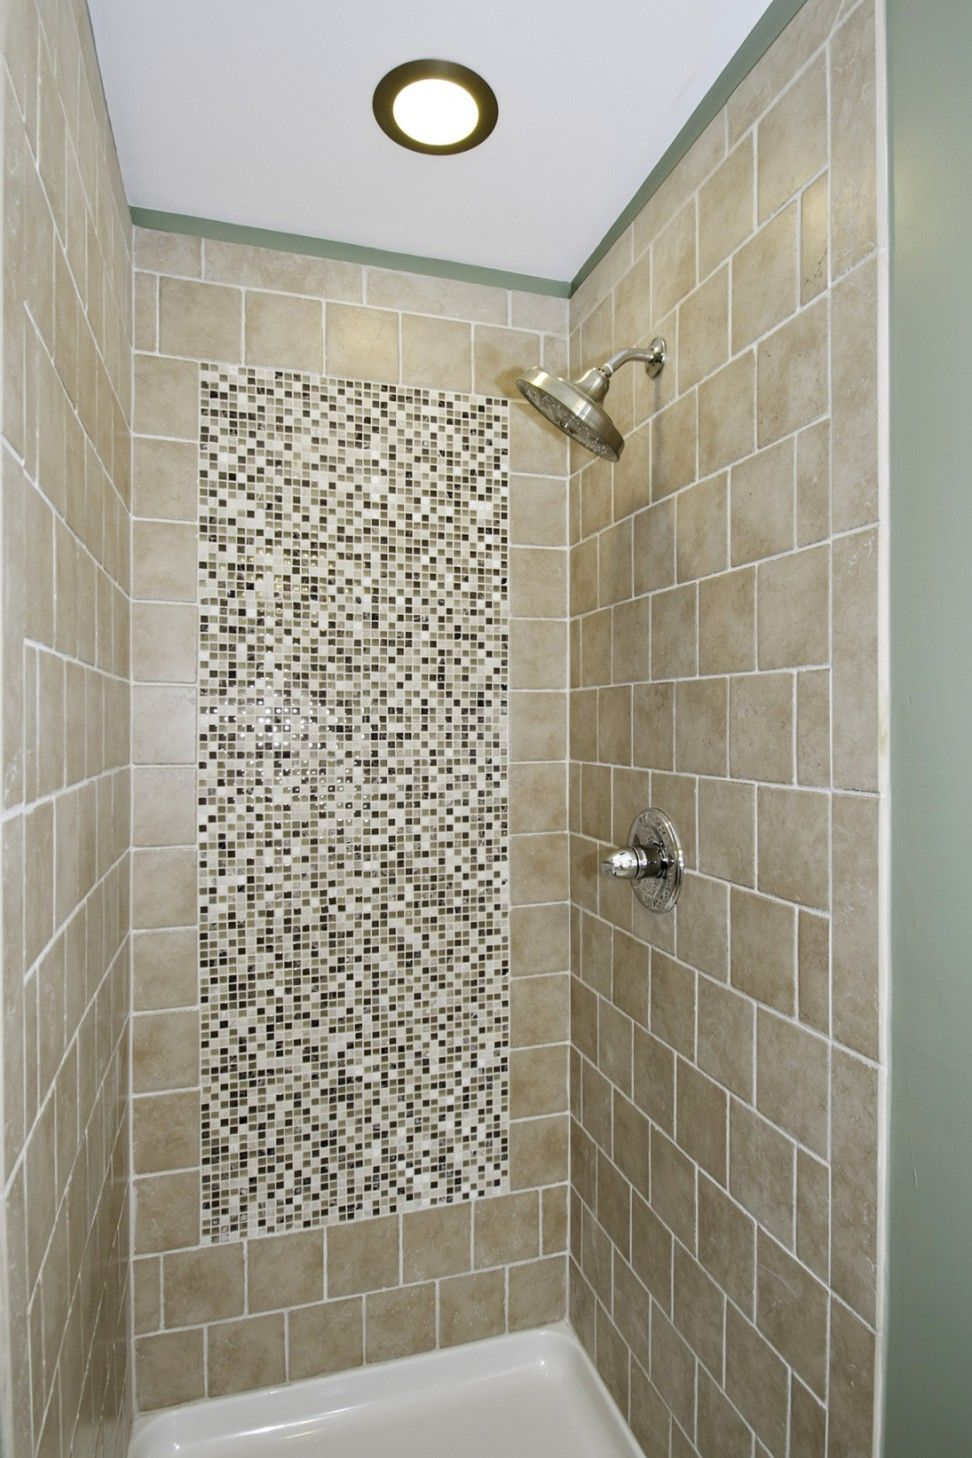 Image Result For Porcelain Tile With Mosaic Tile Inlay On Wall Tile Bathroom Bathroom Tile Designs Mosaic Bathroom Tile